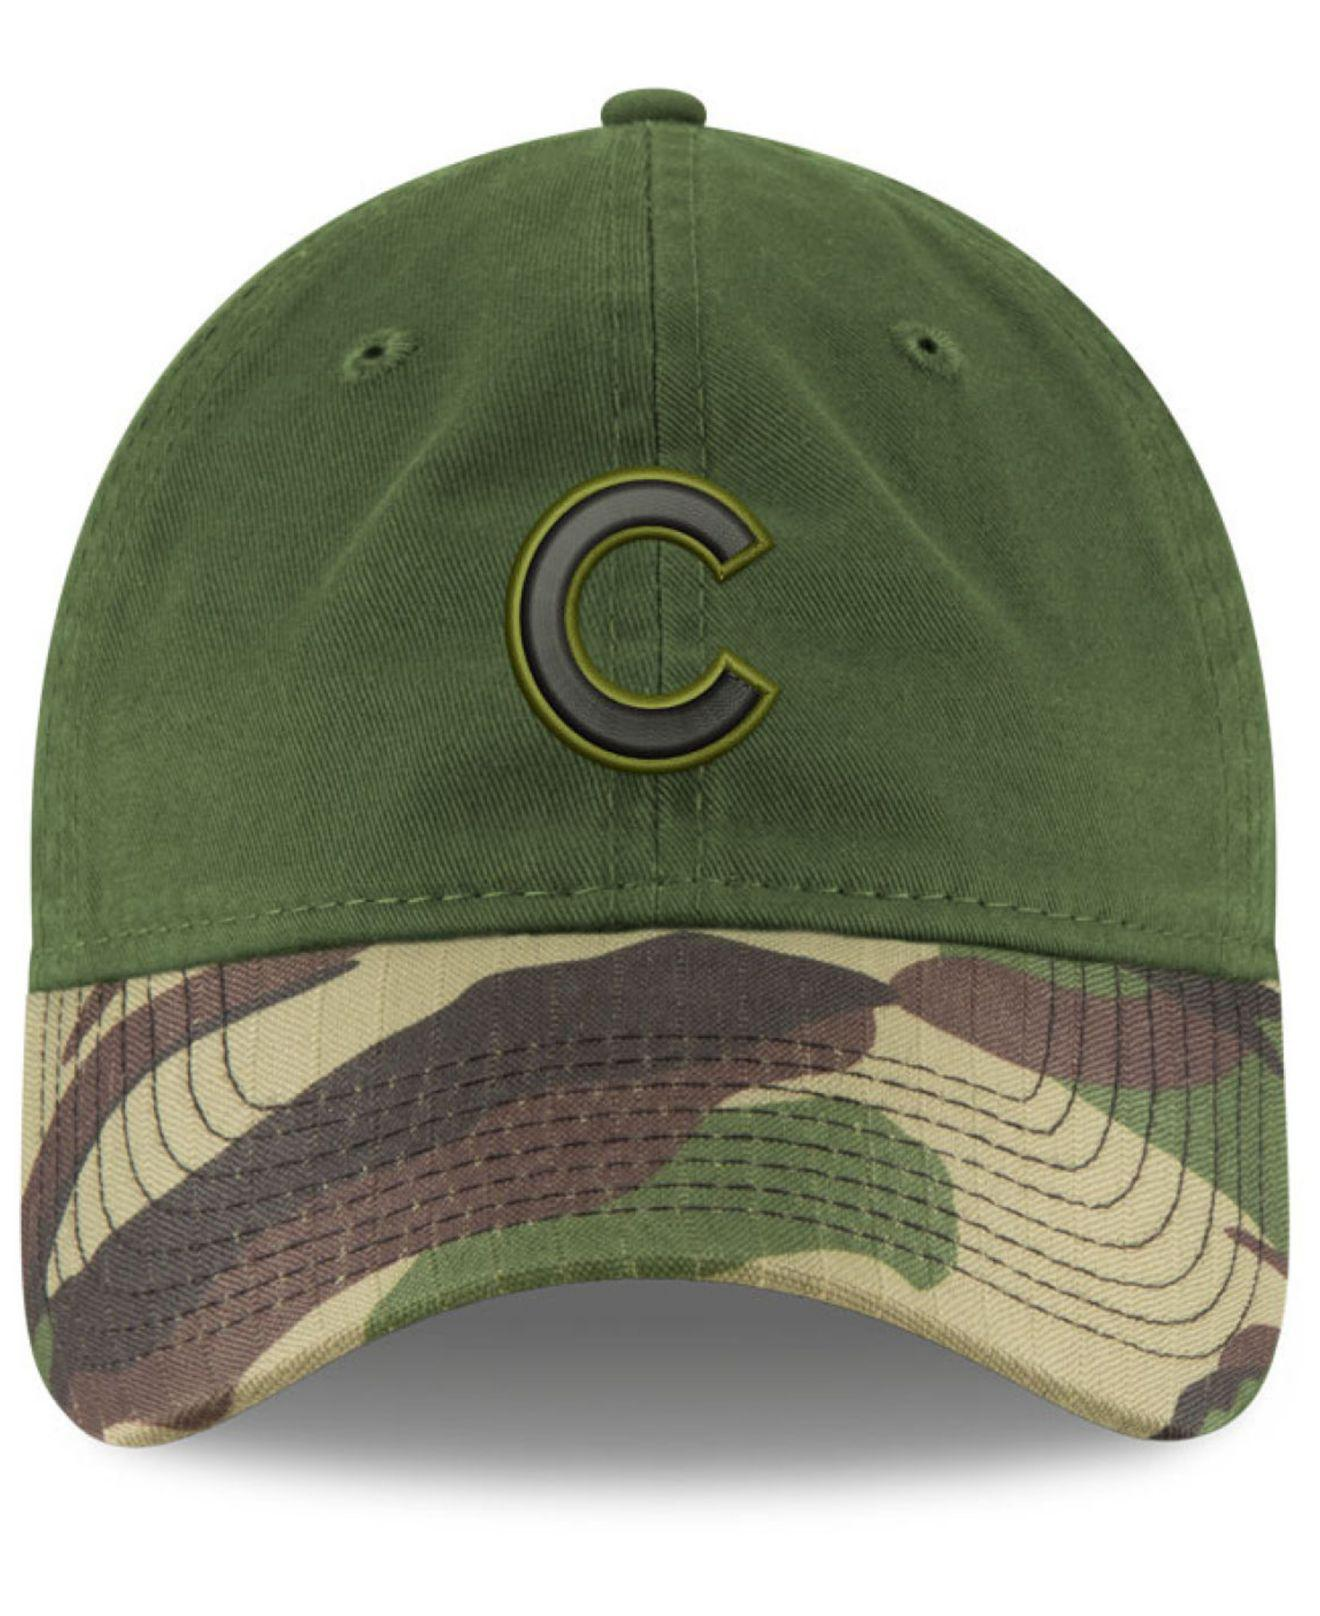 competitive price a7be8 64bf5 spain chicago cubs 2018 memorial day on field 59fifty fitted cap 8dbcf  1c00f  usa lyst ktz chicago cubs memorial day 9twenty cap in green for men  e105e ...